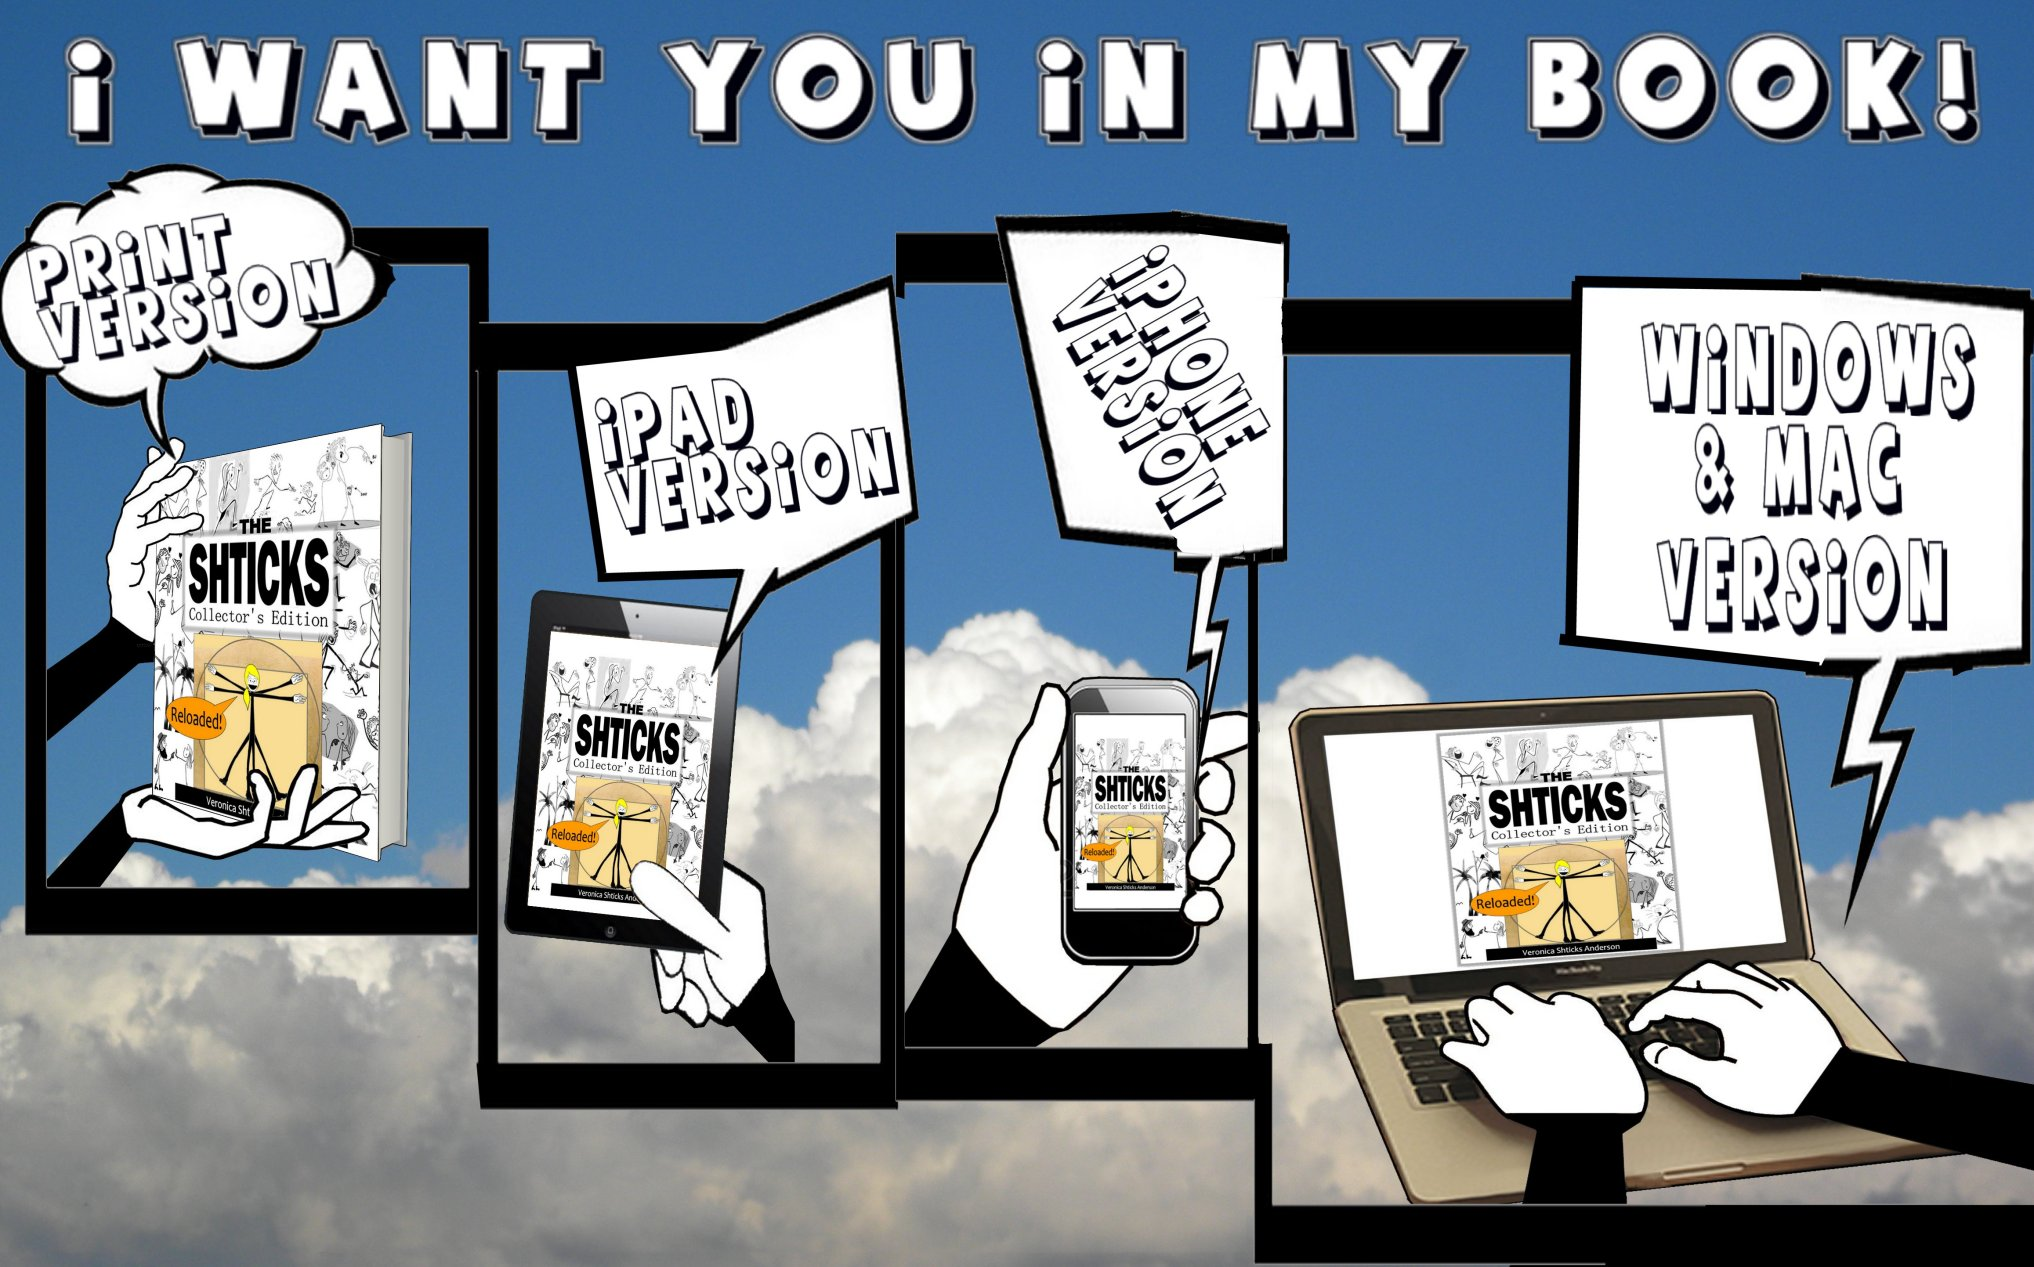 I want you in my book WordPress version